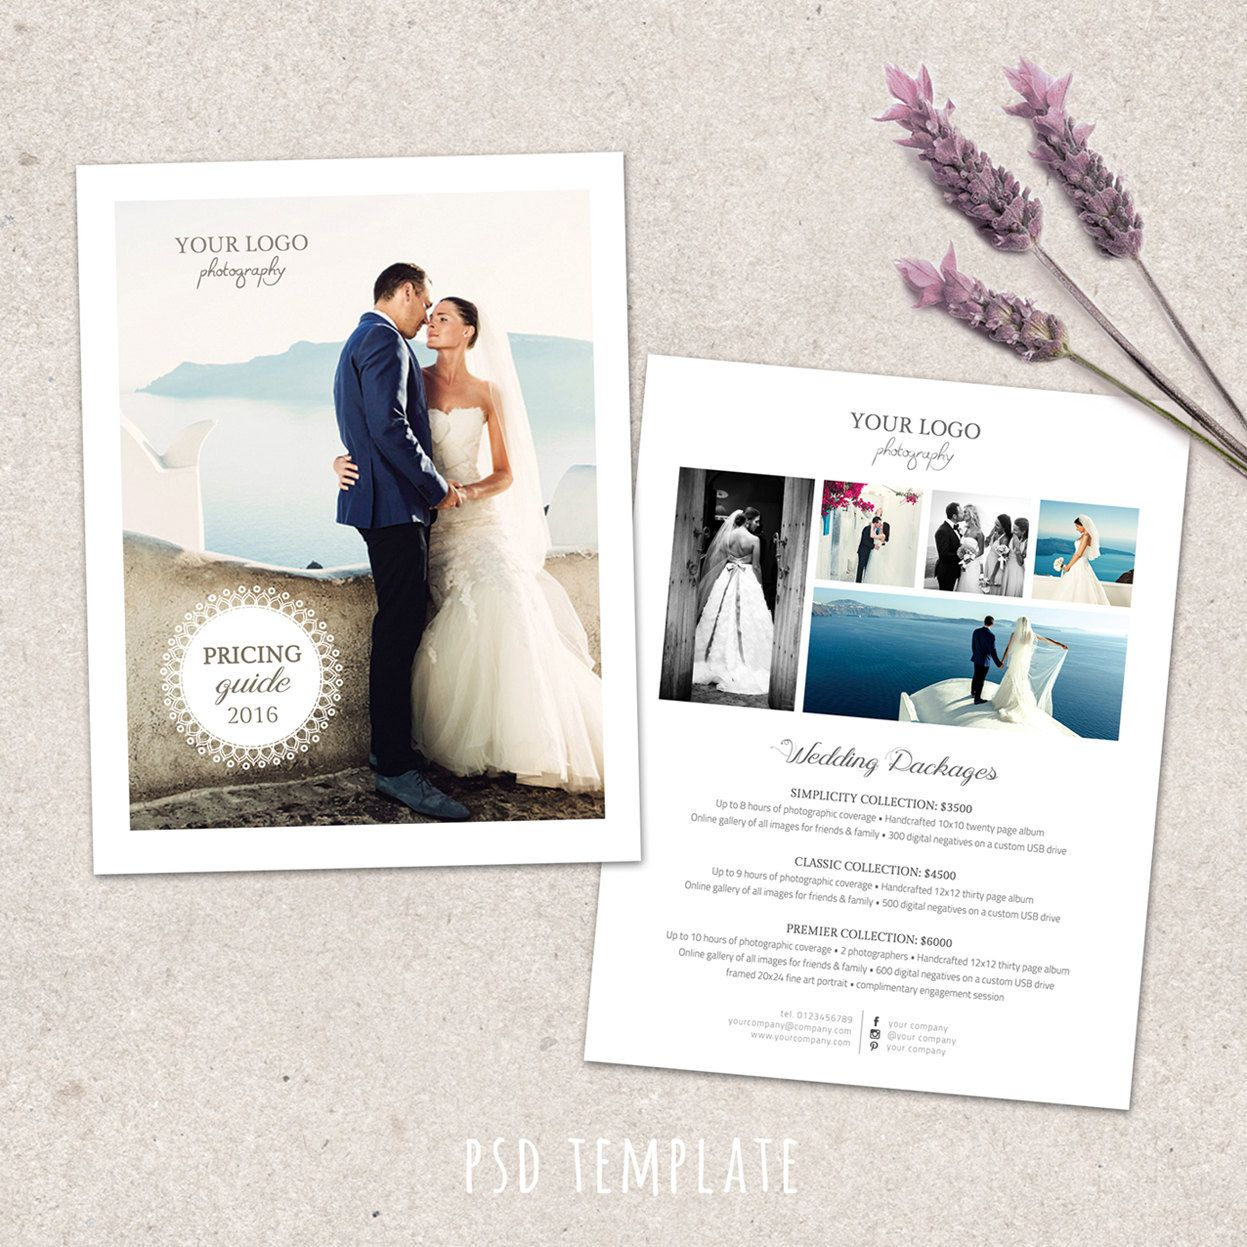 Wedding Photography Price List Template Marketing Advertising Pricing Guide For Photographers Fully Editable Photo Files By